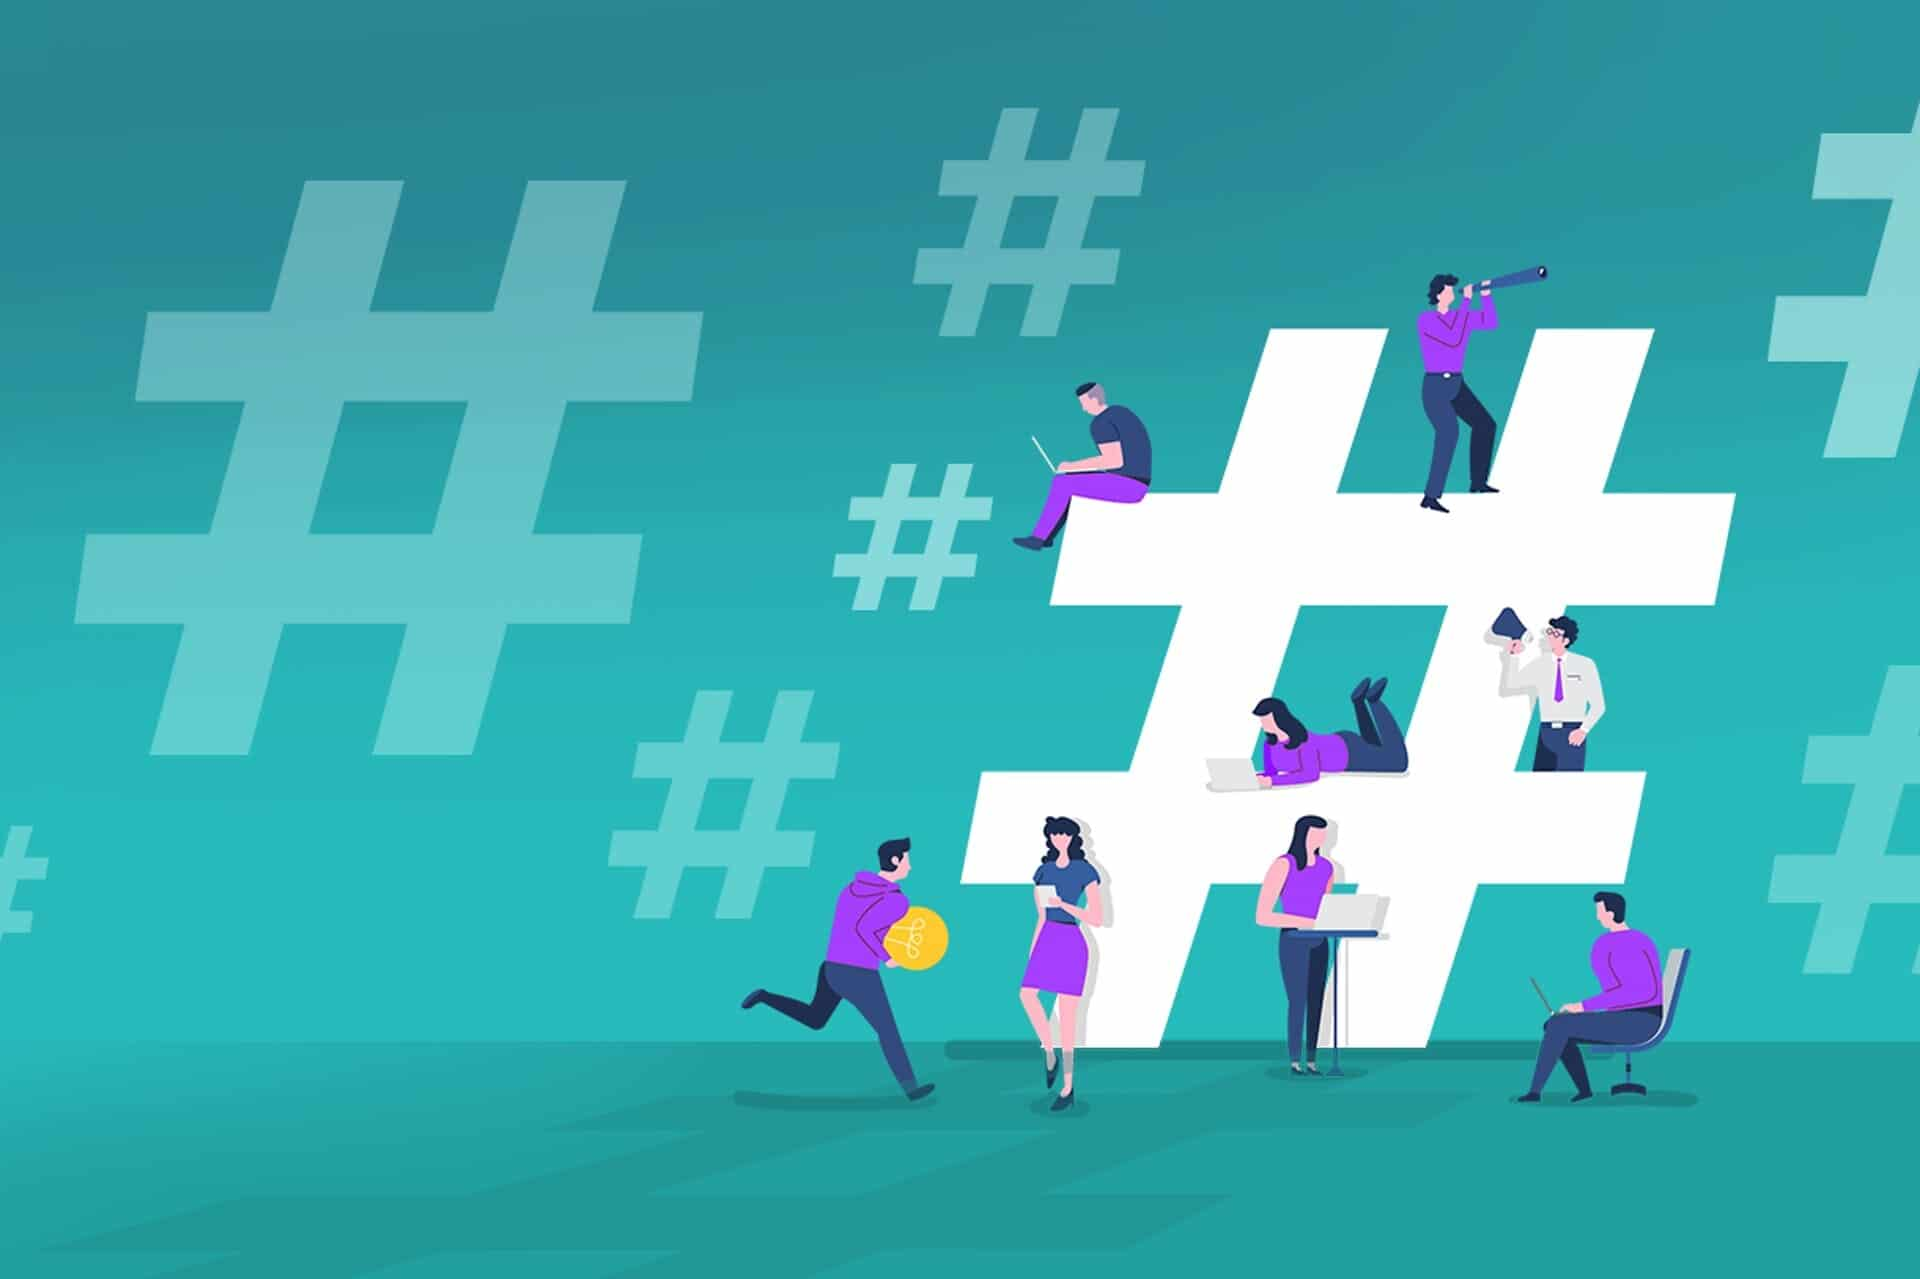 Need to understand Hashtags#️⃣ to draw readers? #literaryclarity #authorpreneur